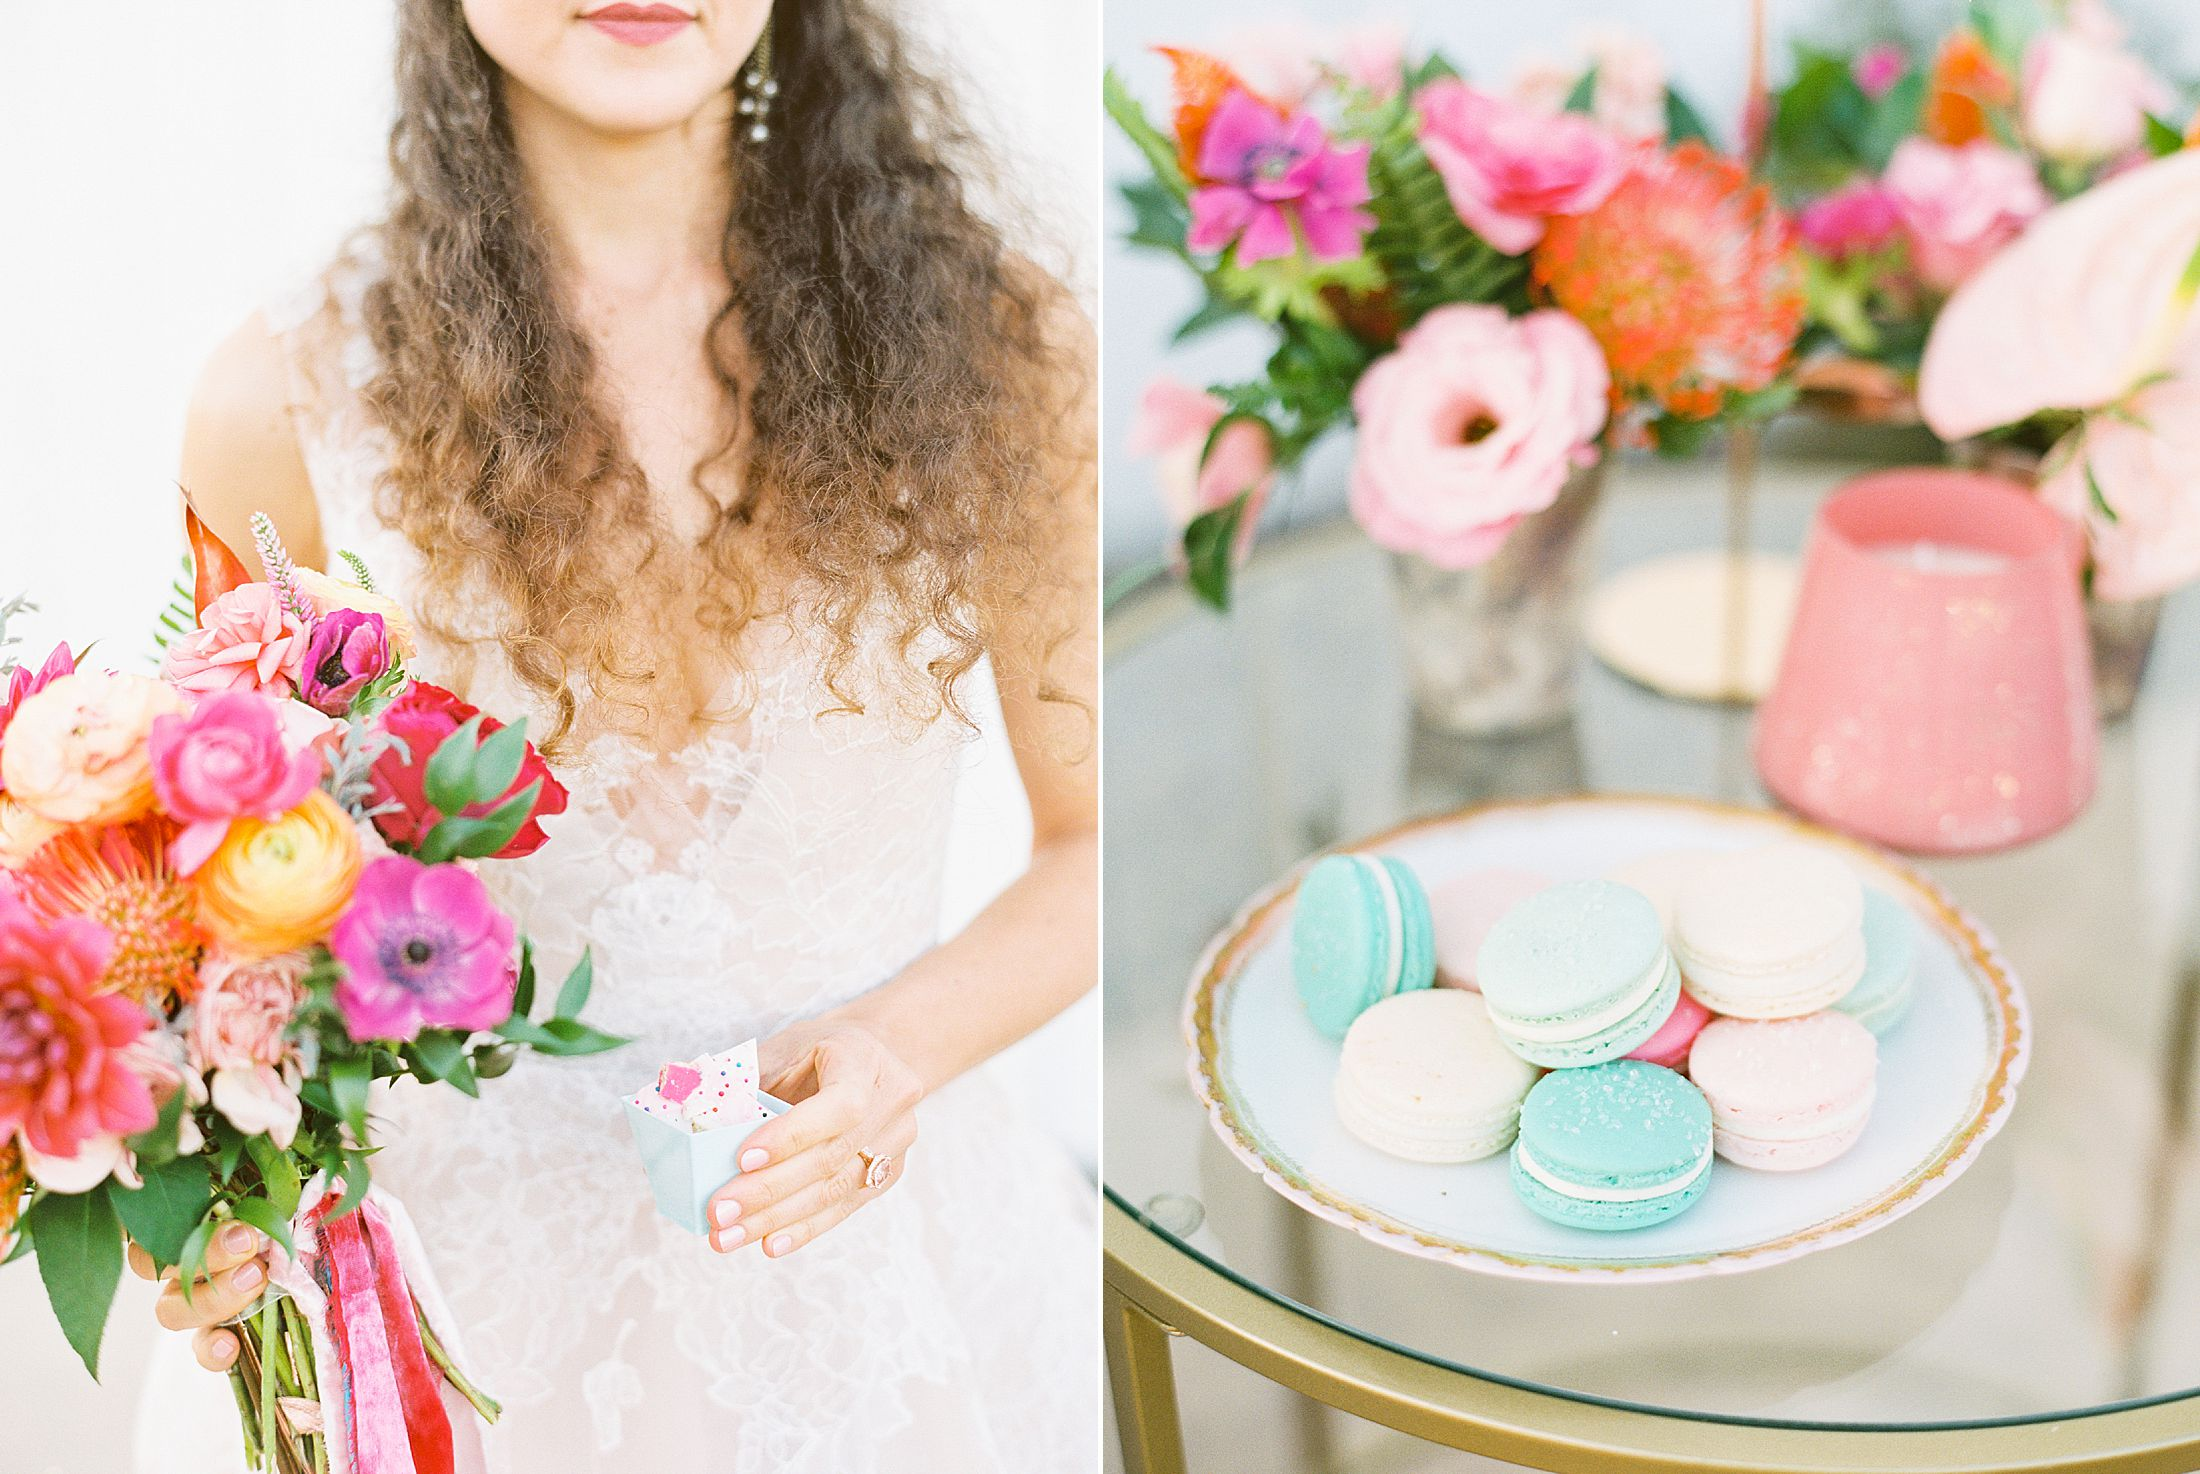 White Barn Edna Valley Wedding Inspiration - San Luis Obispo Wedding - Featured on Green Wedding Shoes - Ashley Baumgartner - FM Events SLO - SLO Wedding Photographer_0041.jpg